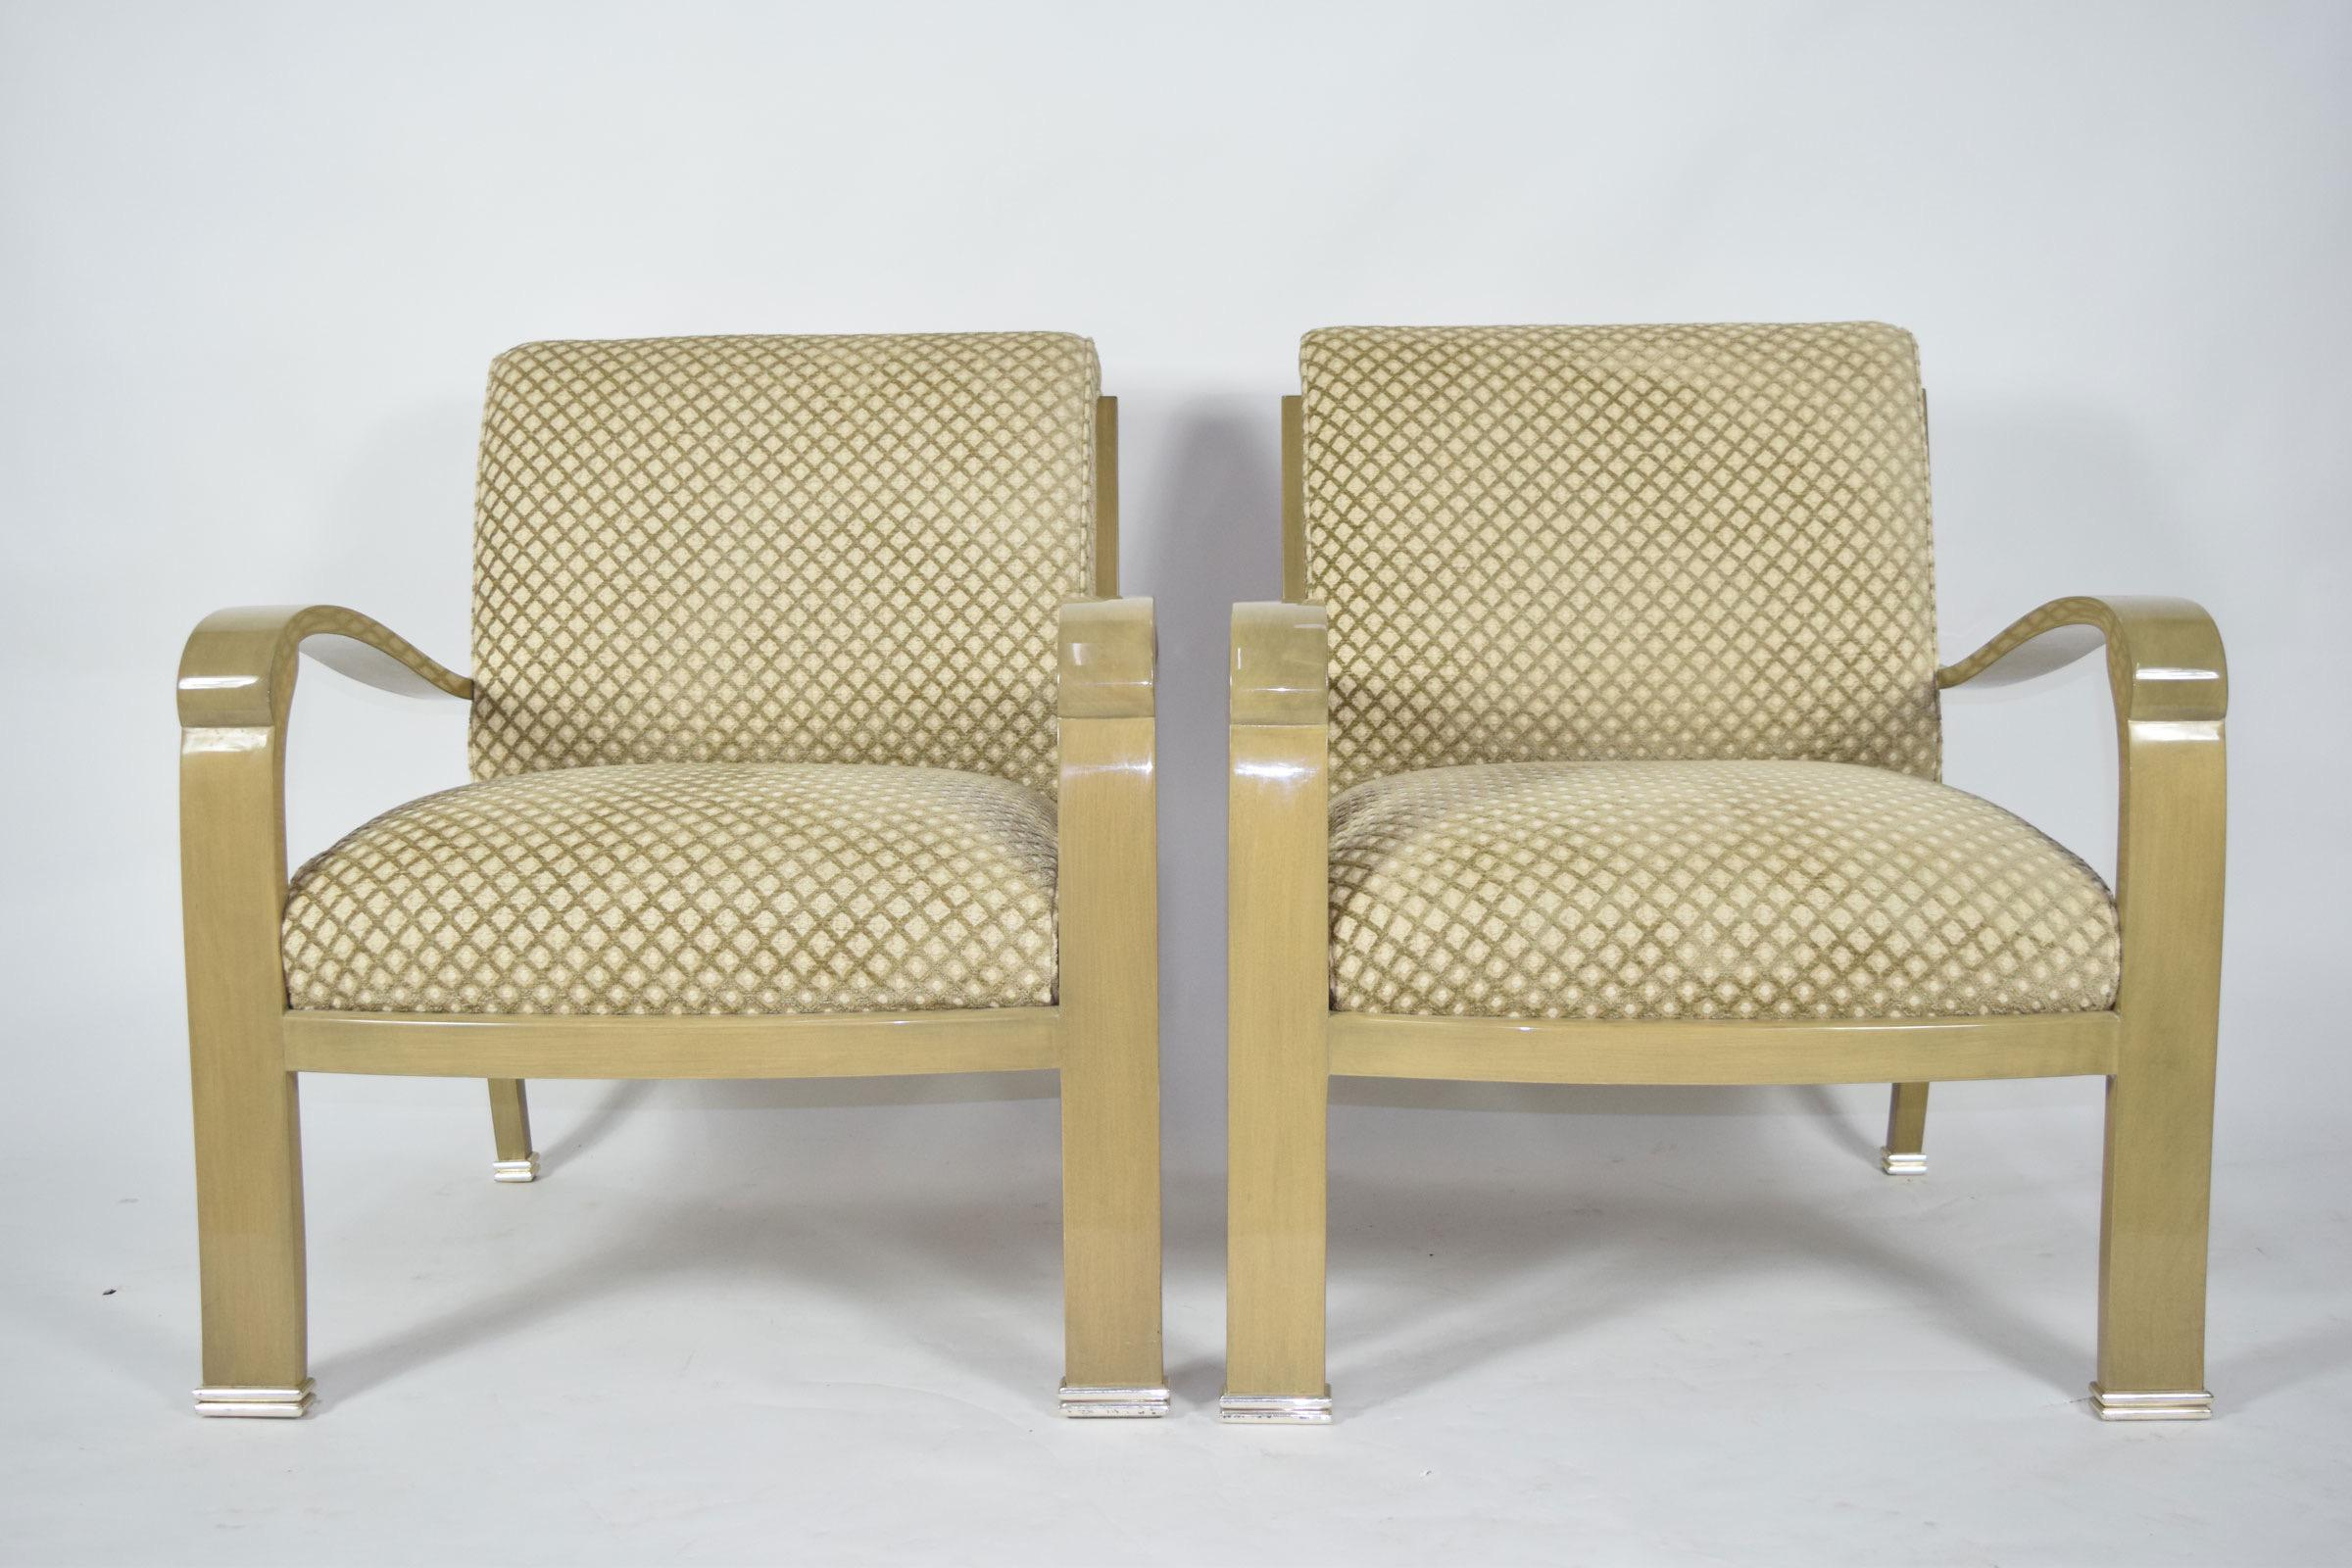 Six J. Robert Scott Salon Deco Lounge Chairs By Sally Sirkin Lewis   Image 9